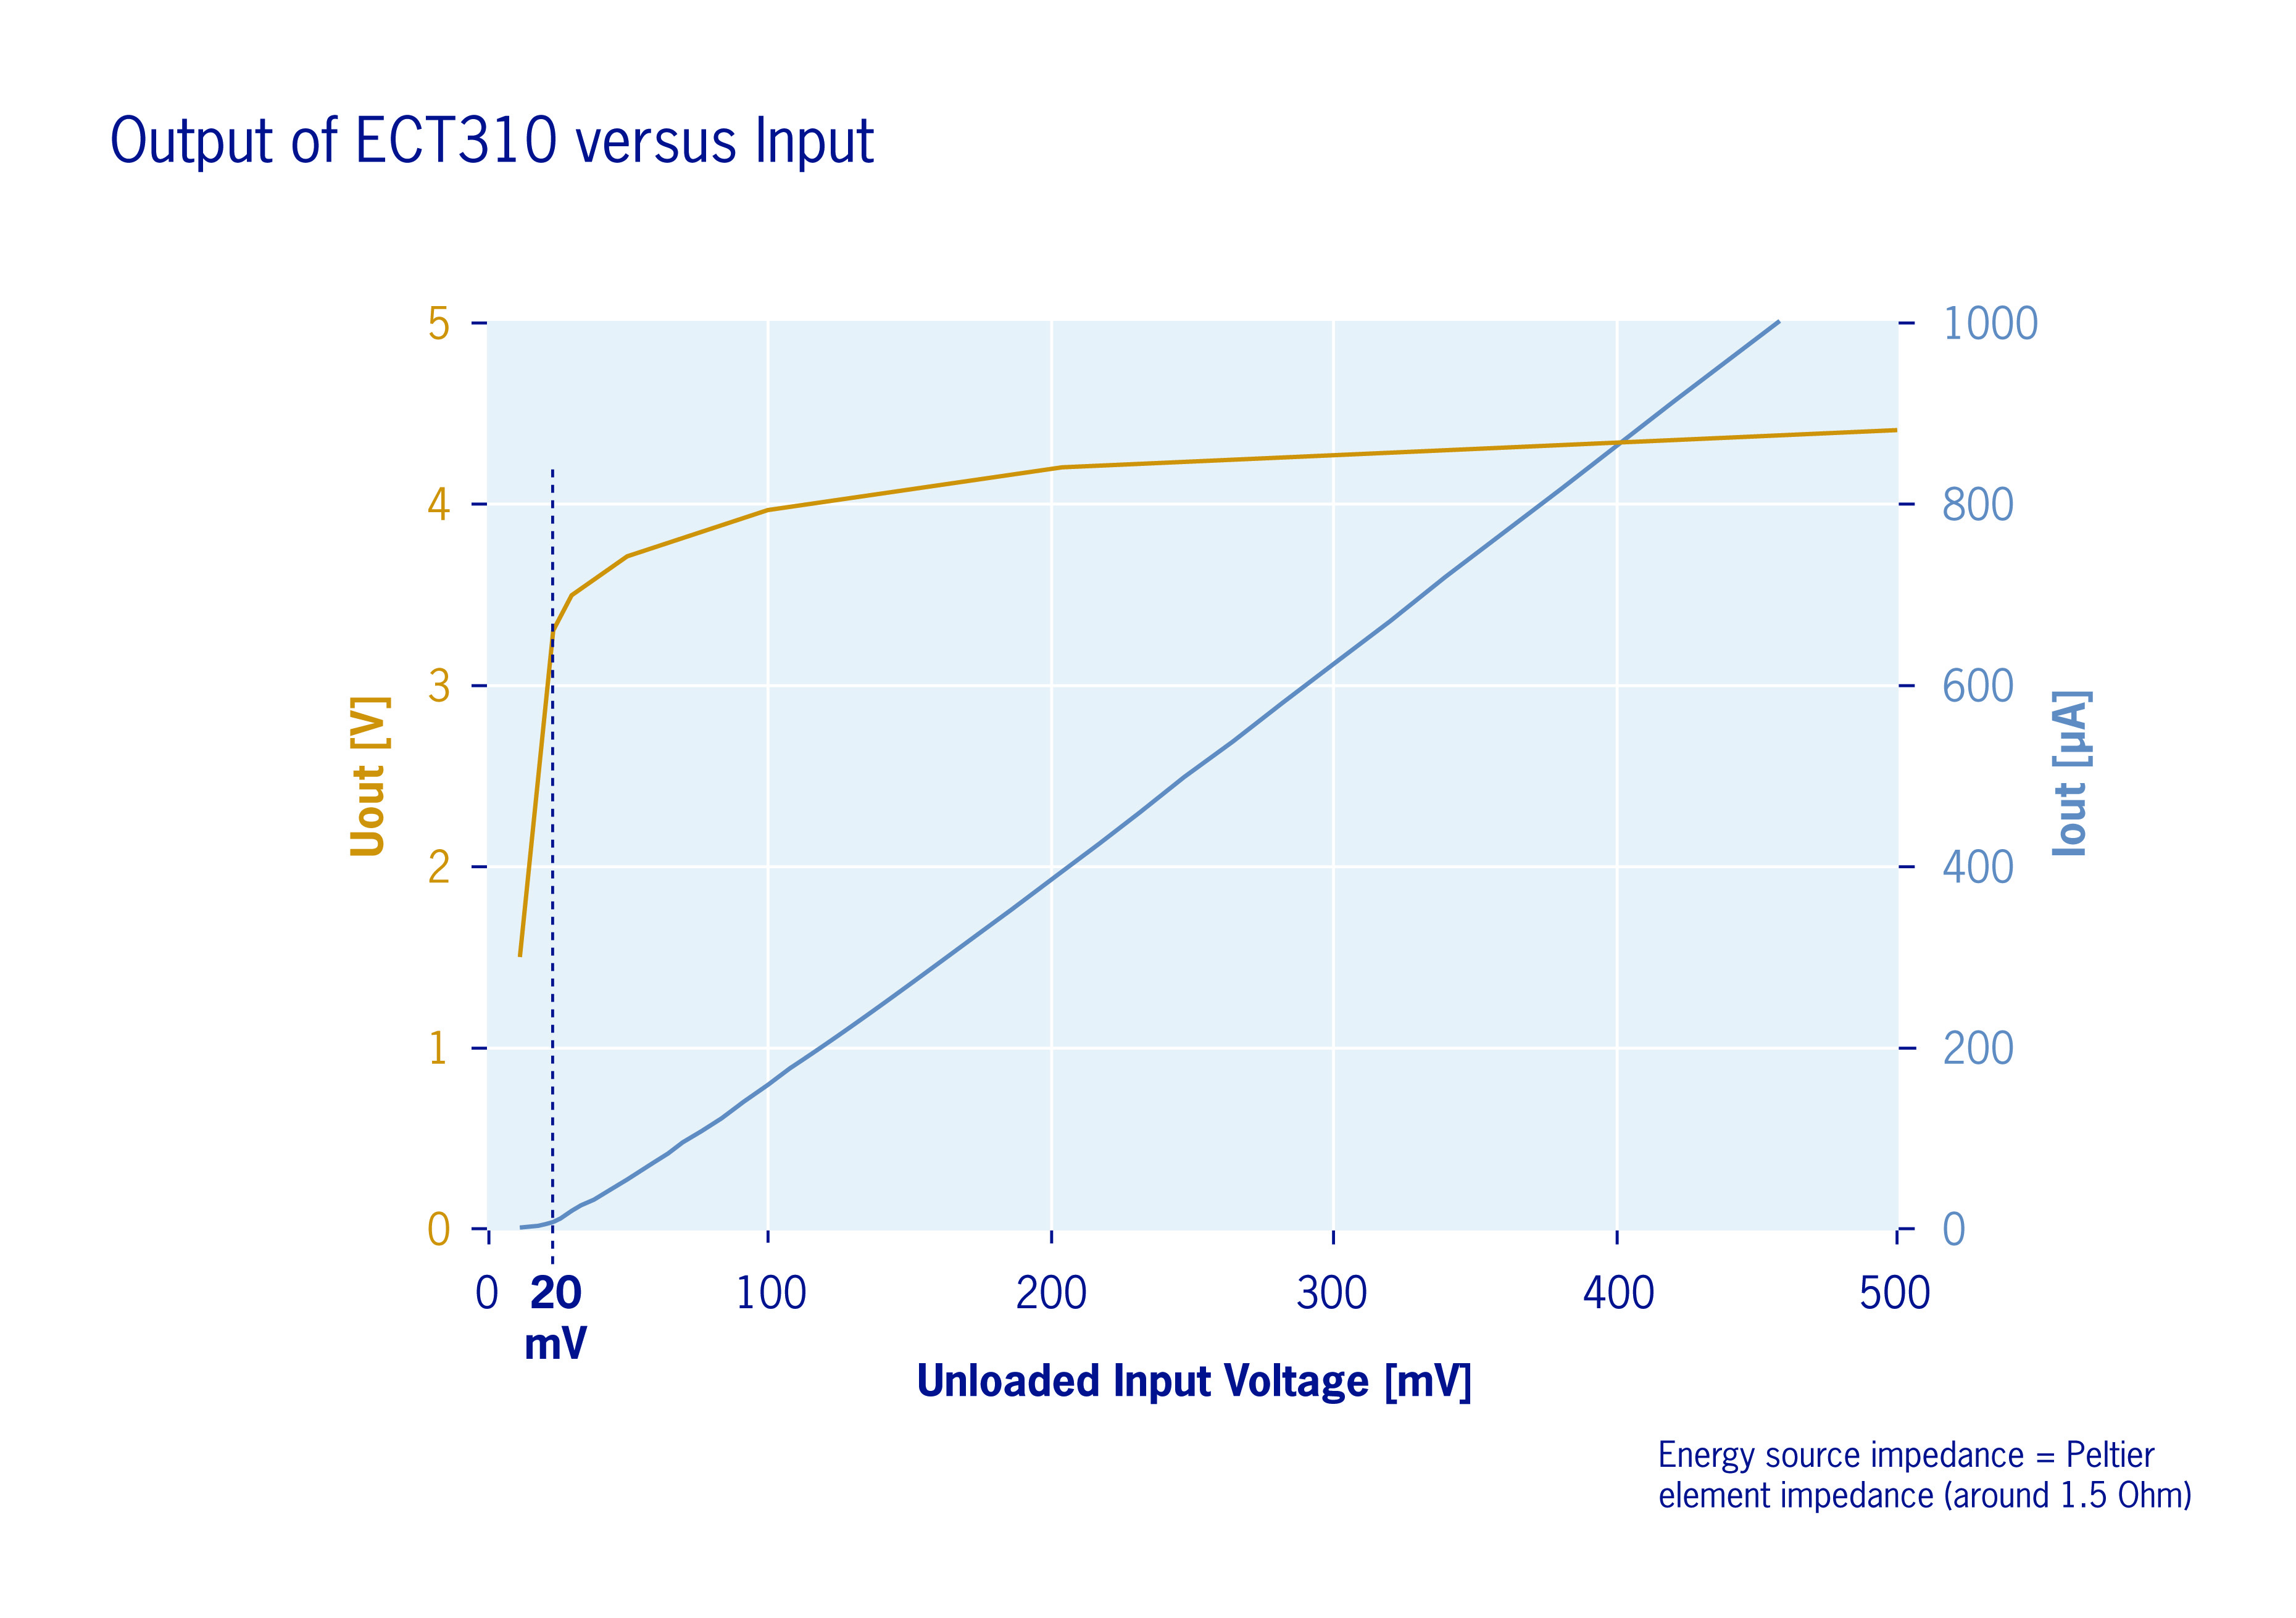 Figure 2: The ECT 310 provides 'free' energy through harvesting temperature differences